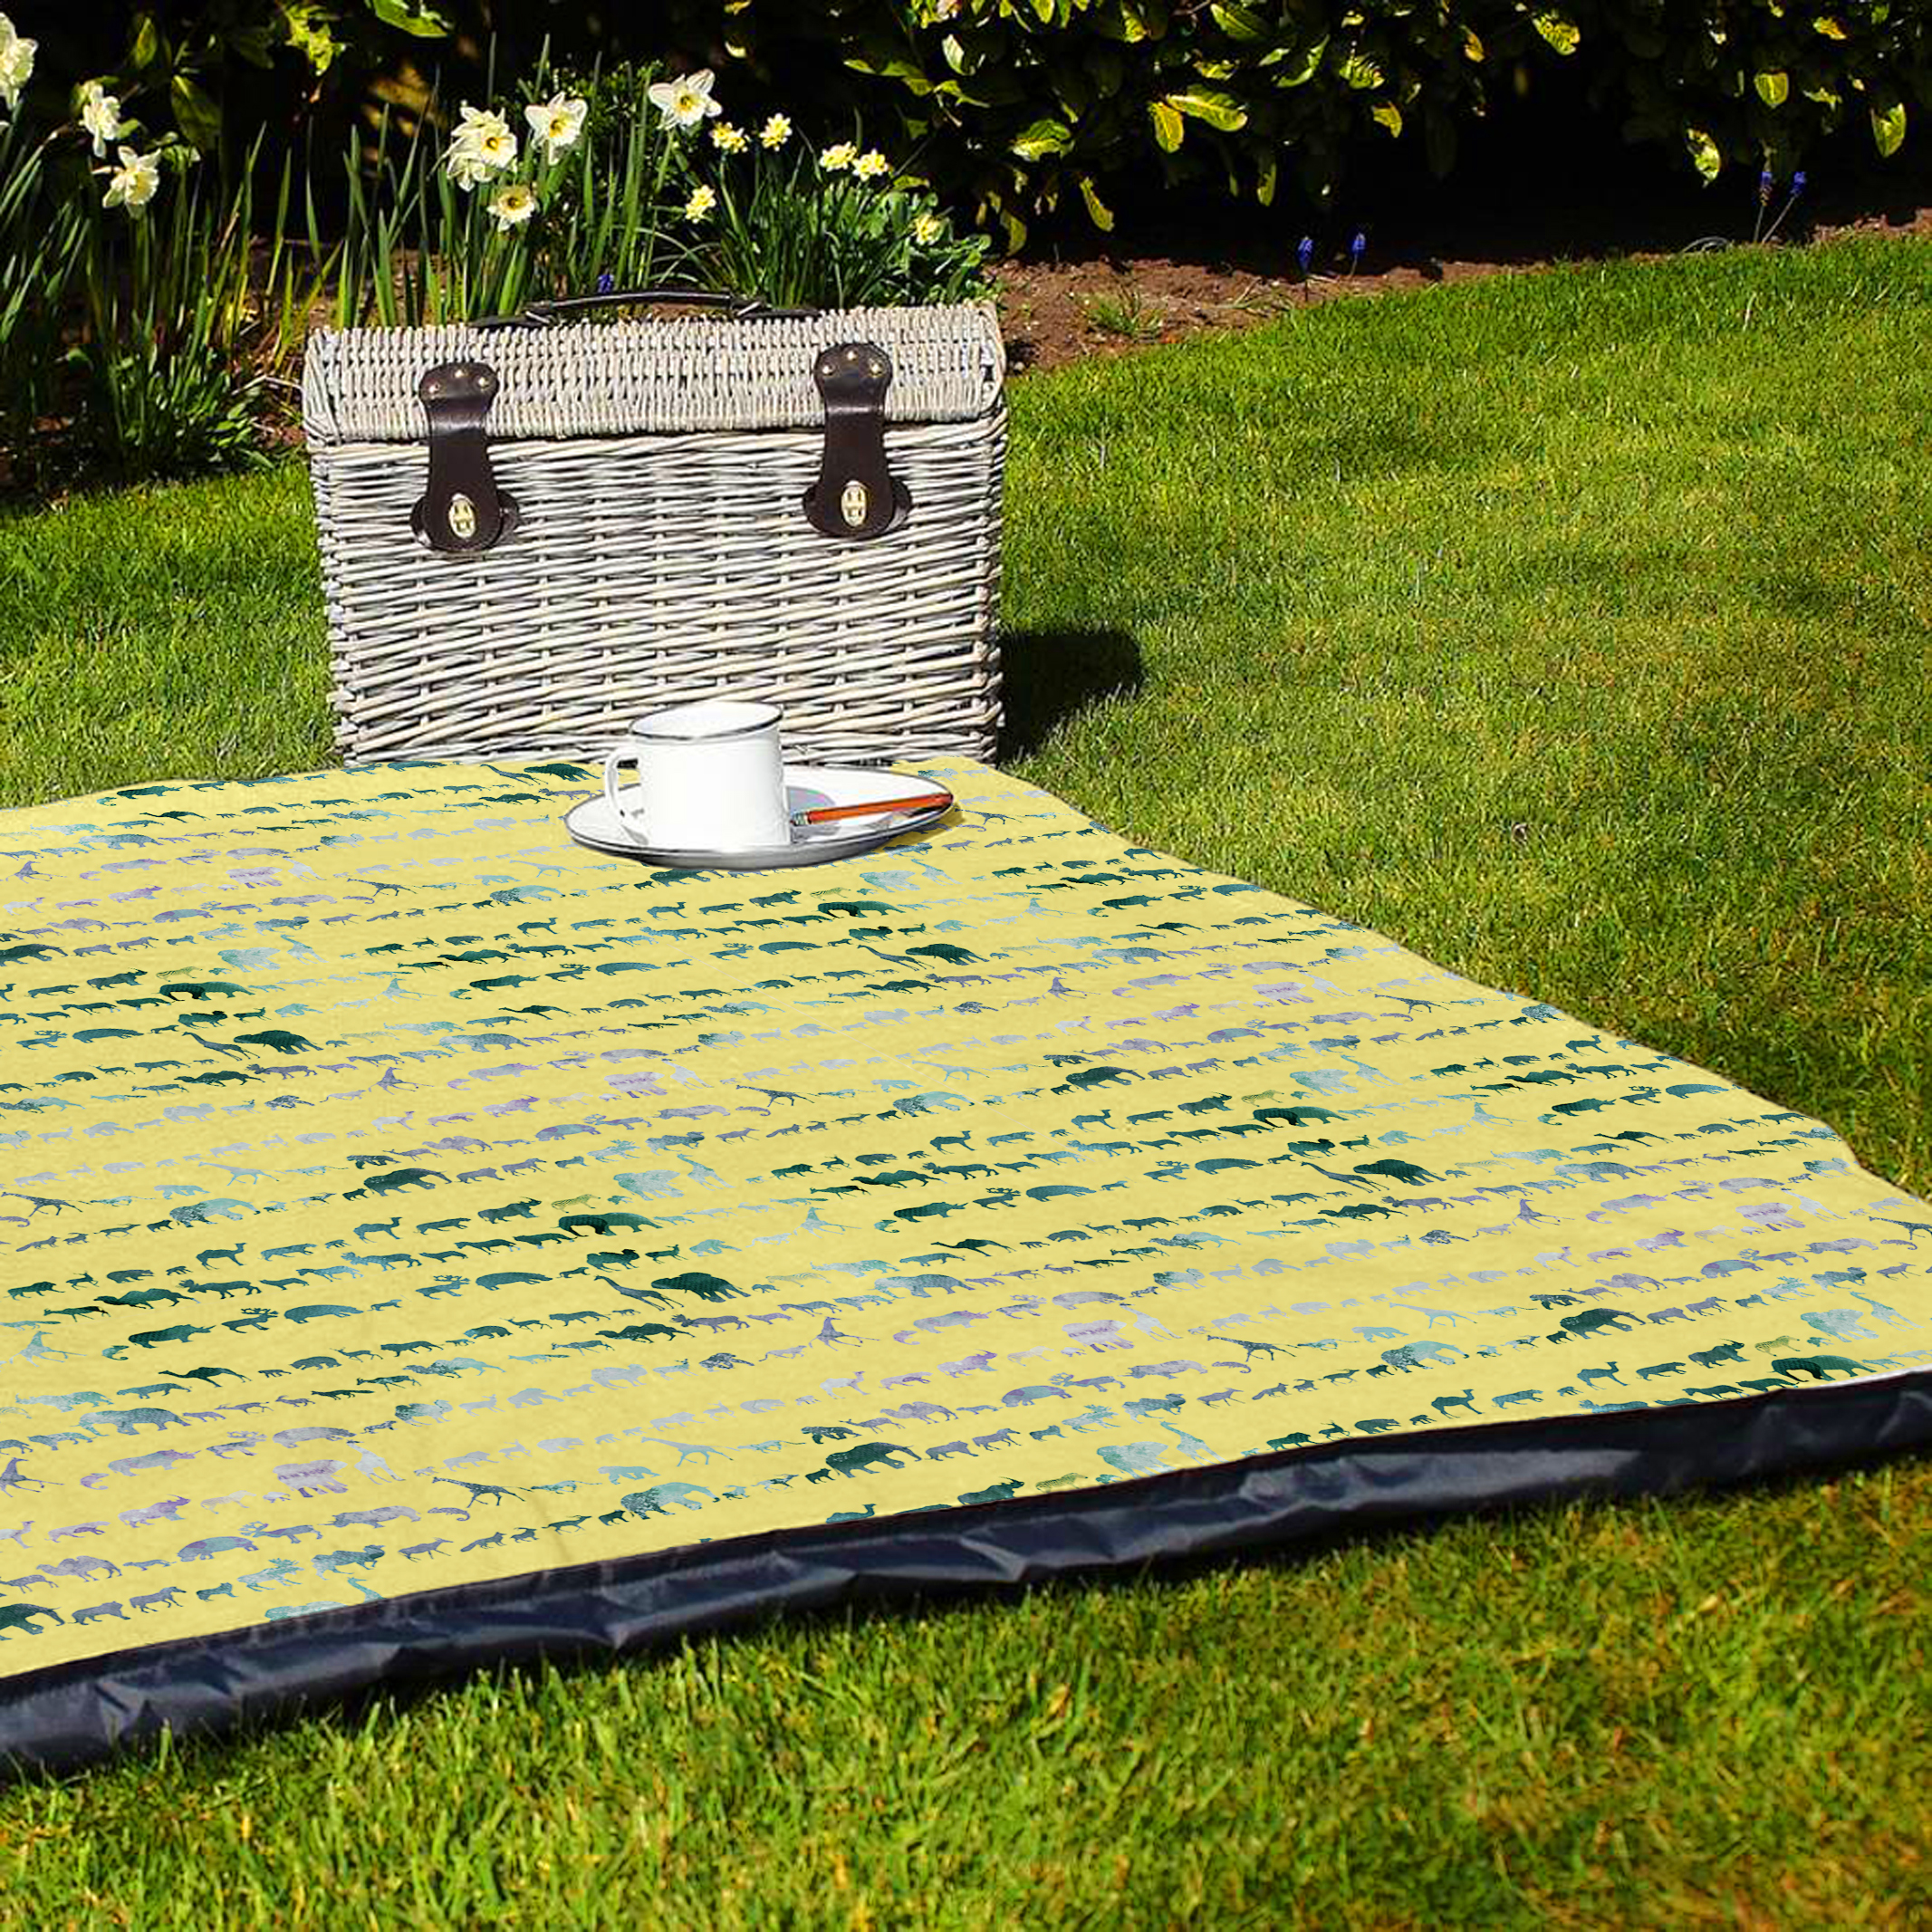 The Wilds Picnic Blanket